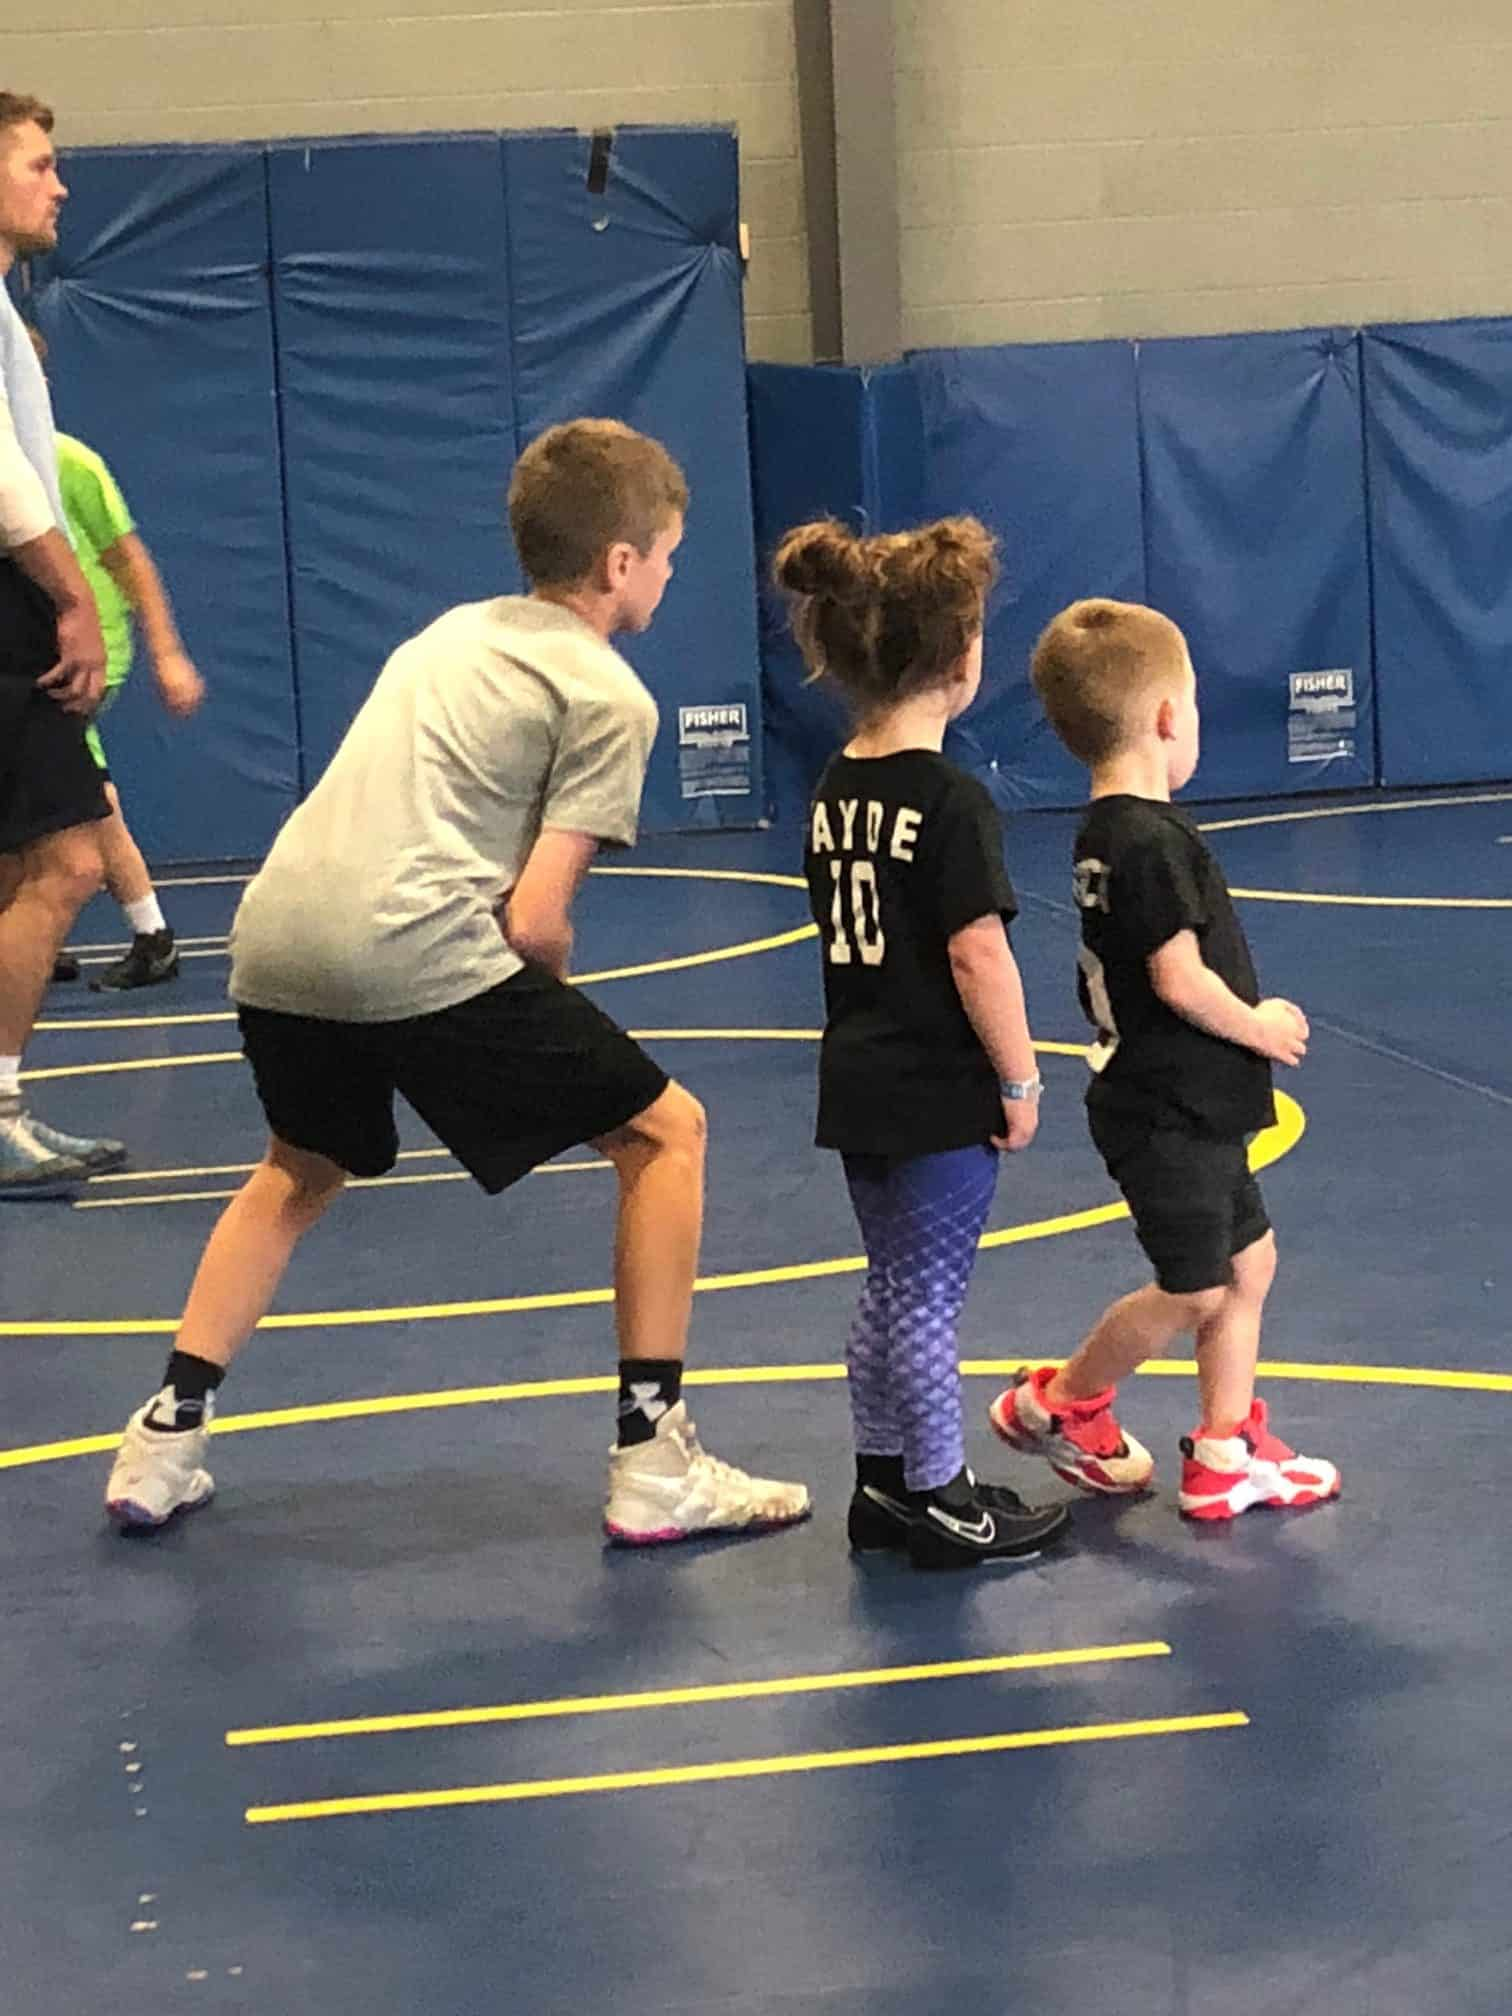 Taylor McKinney's children playing in a gym